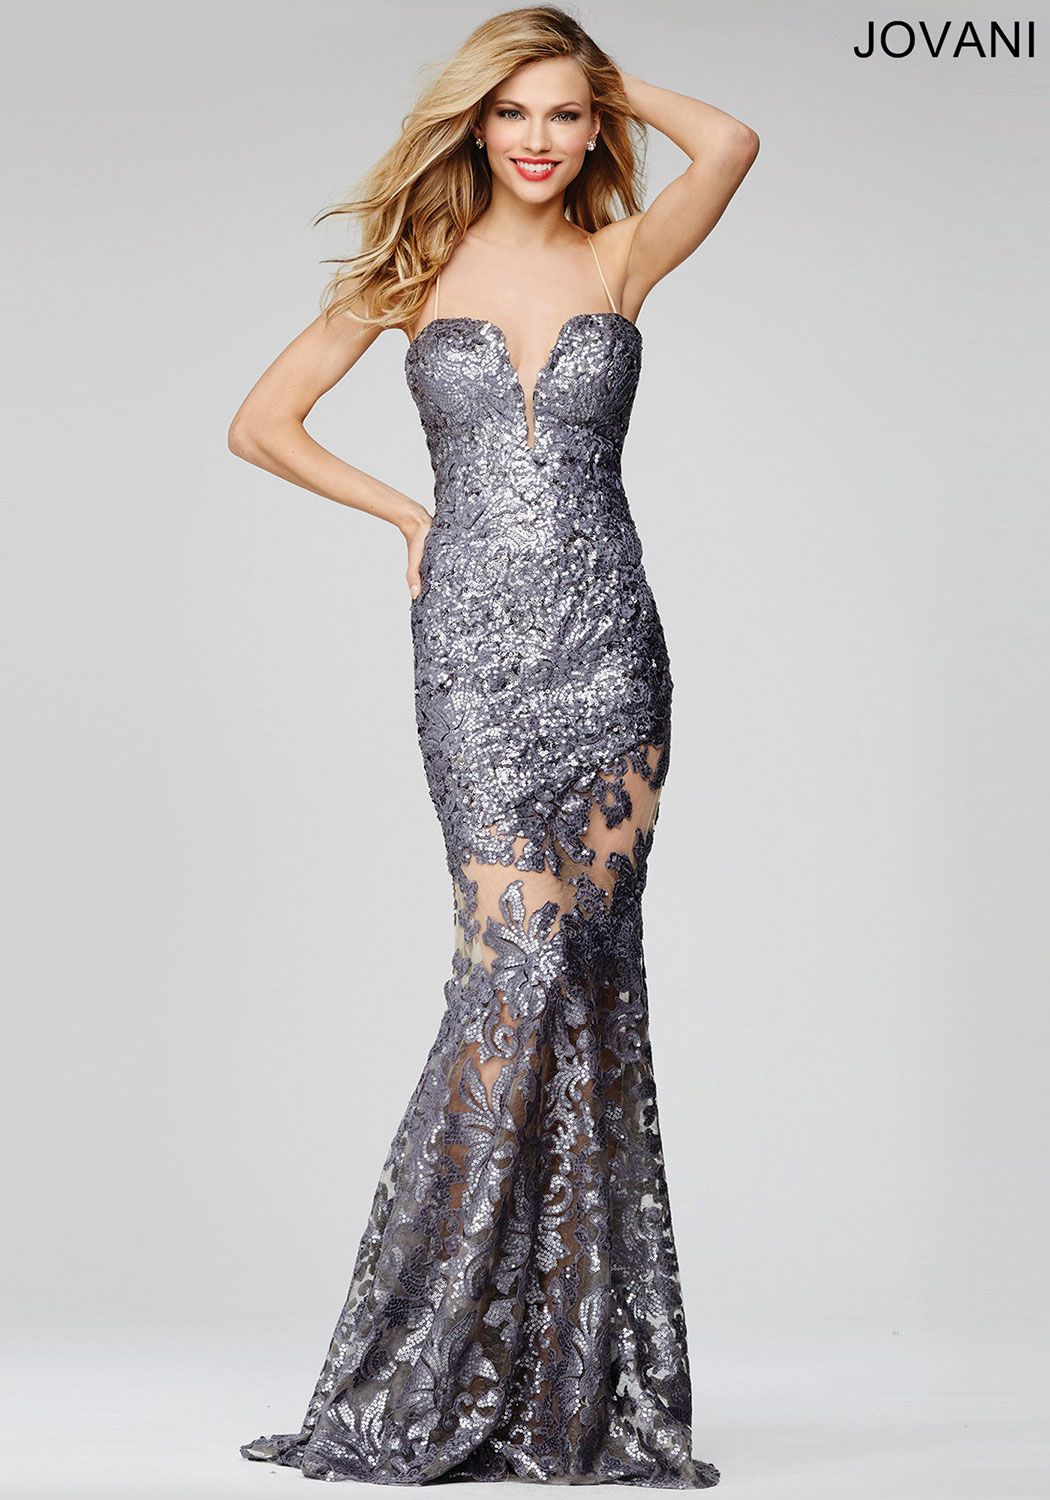 Radiant floor length metallic mermaid dress features a sweetheart